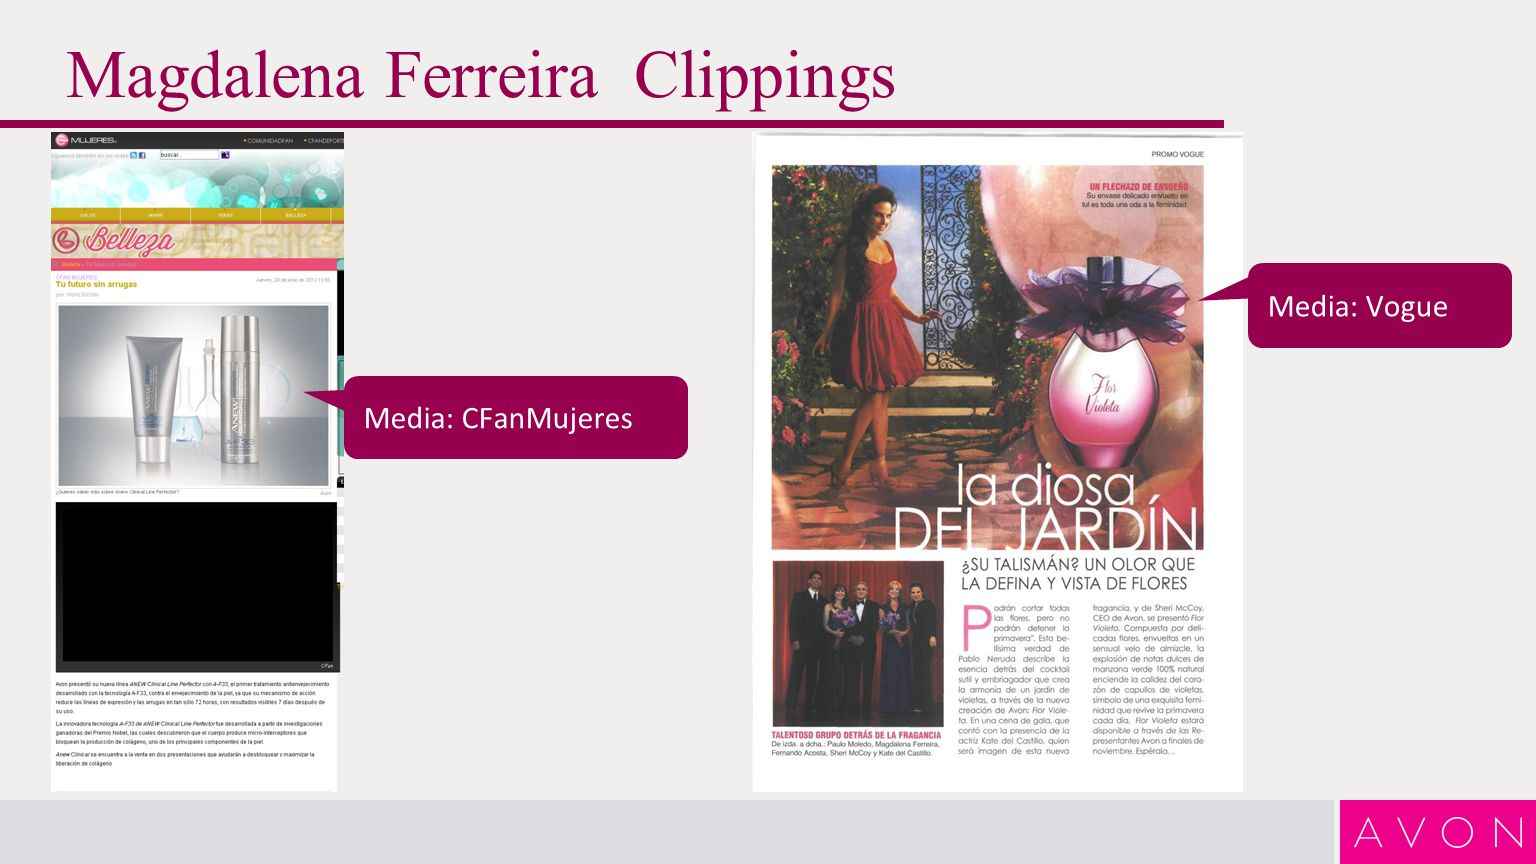 Magdalena Ferreira Clippings Media: Vogue Media: CFanMujeres